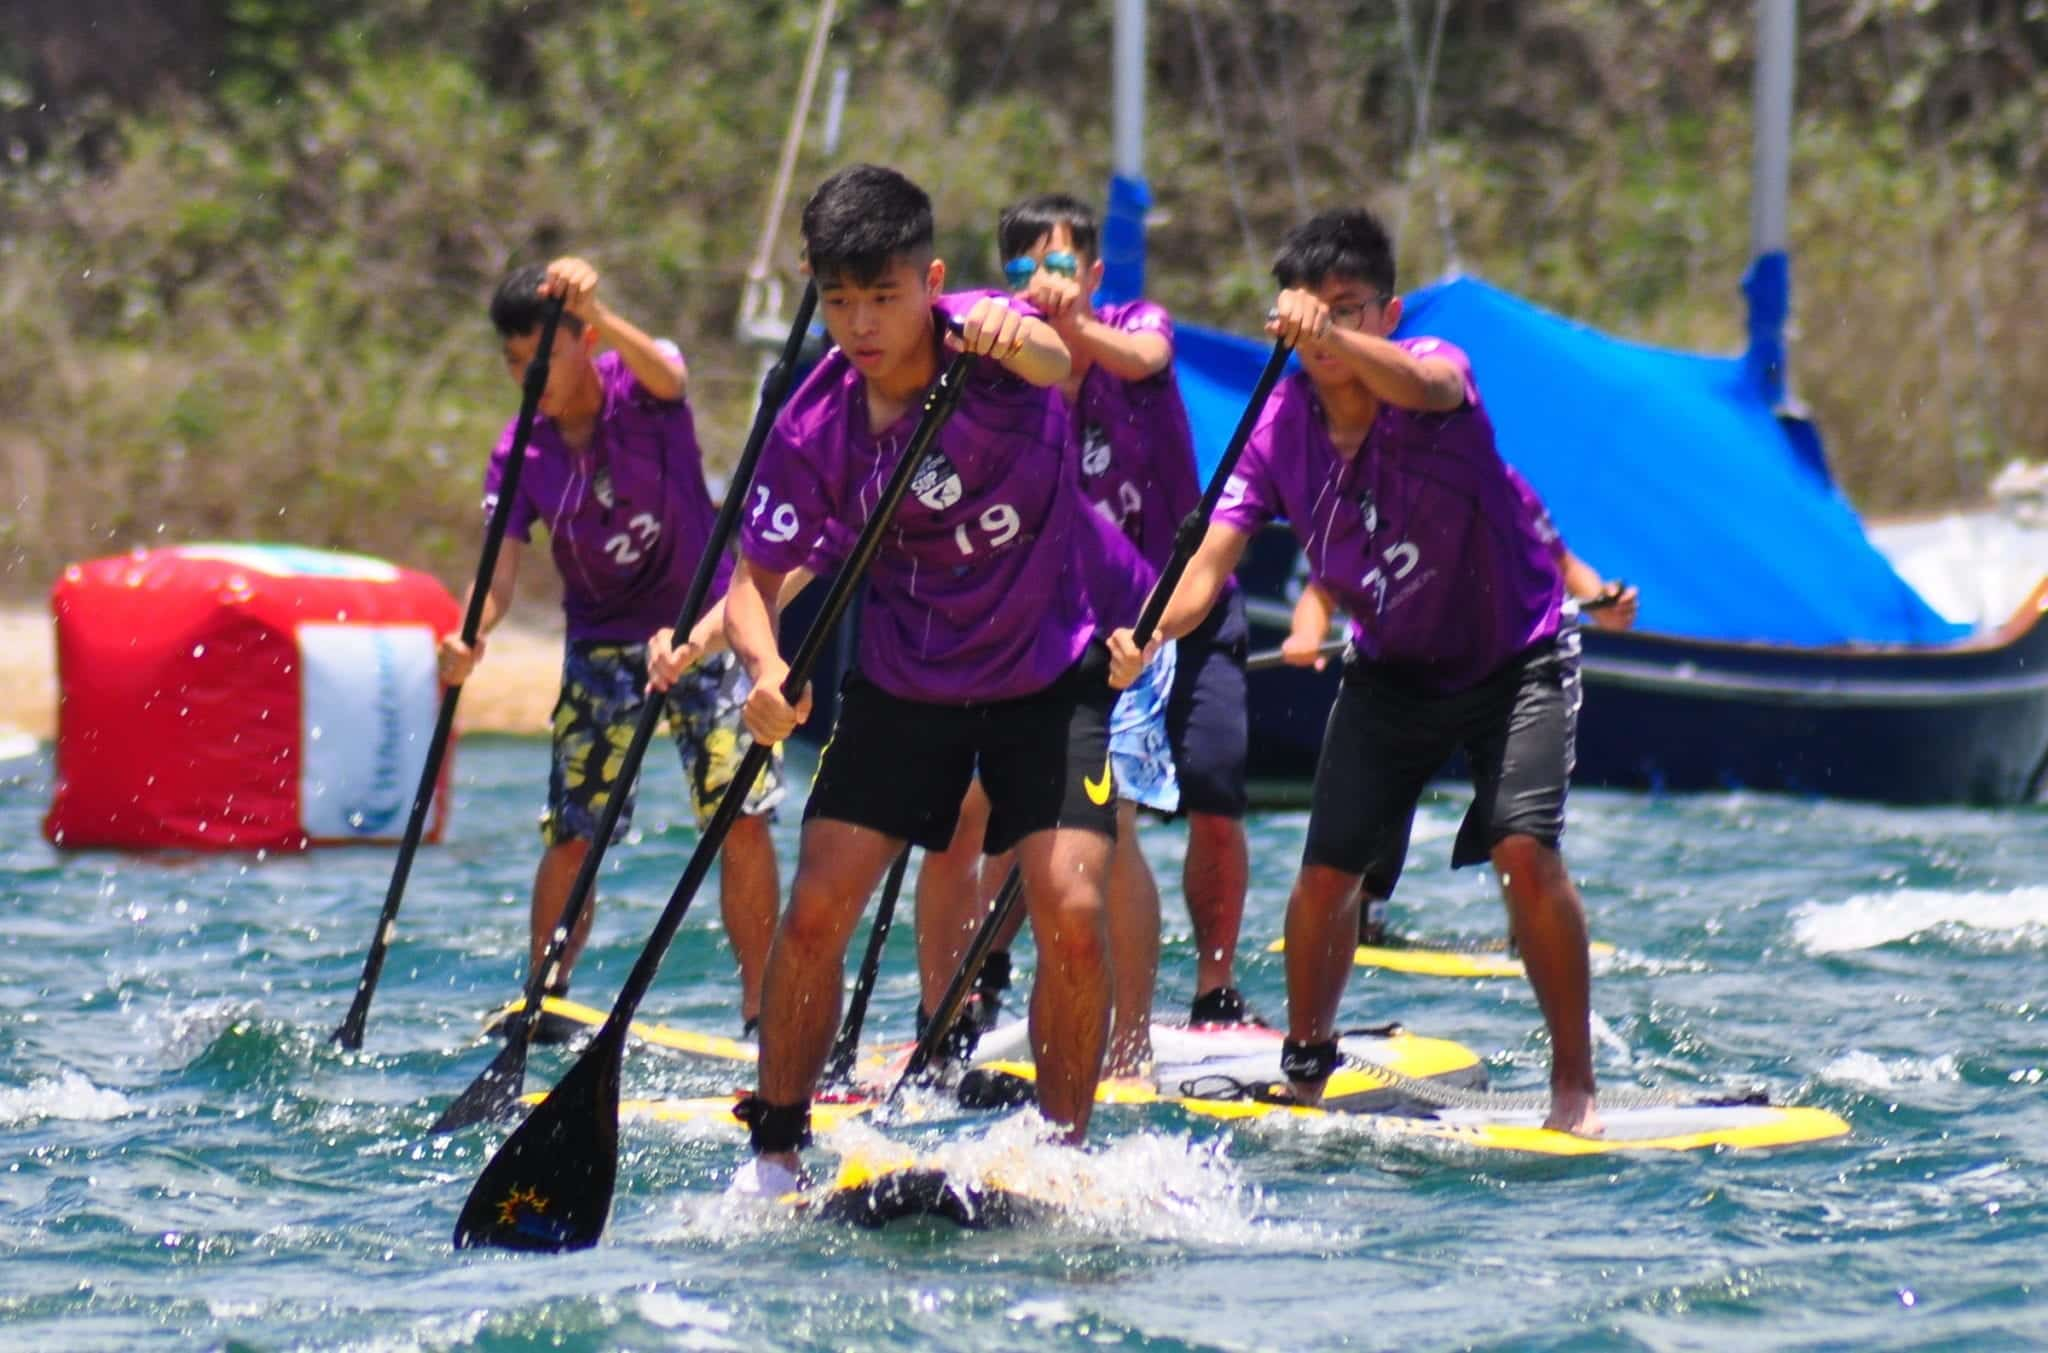 SUP Intermediate Program (Silver) (8 hours)